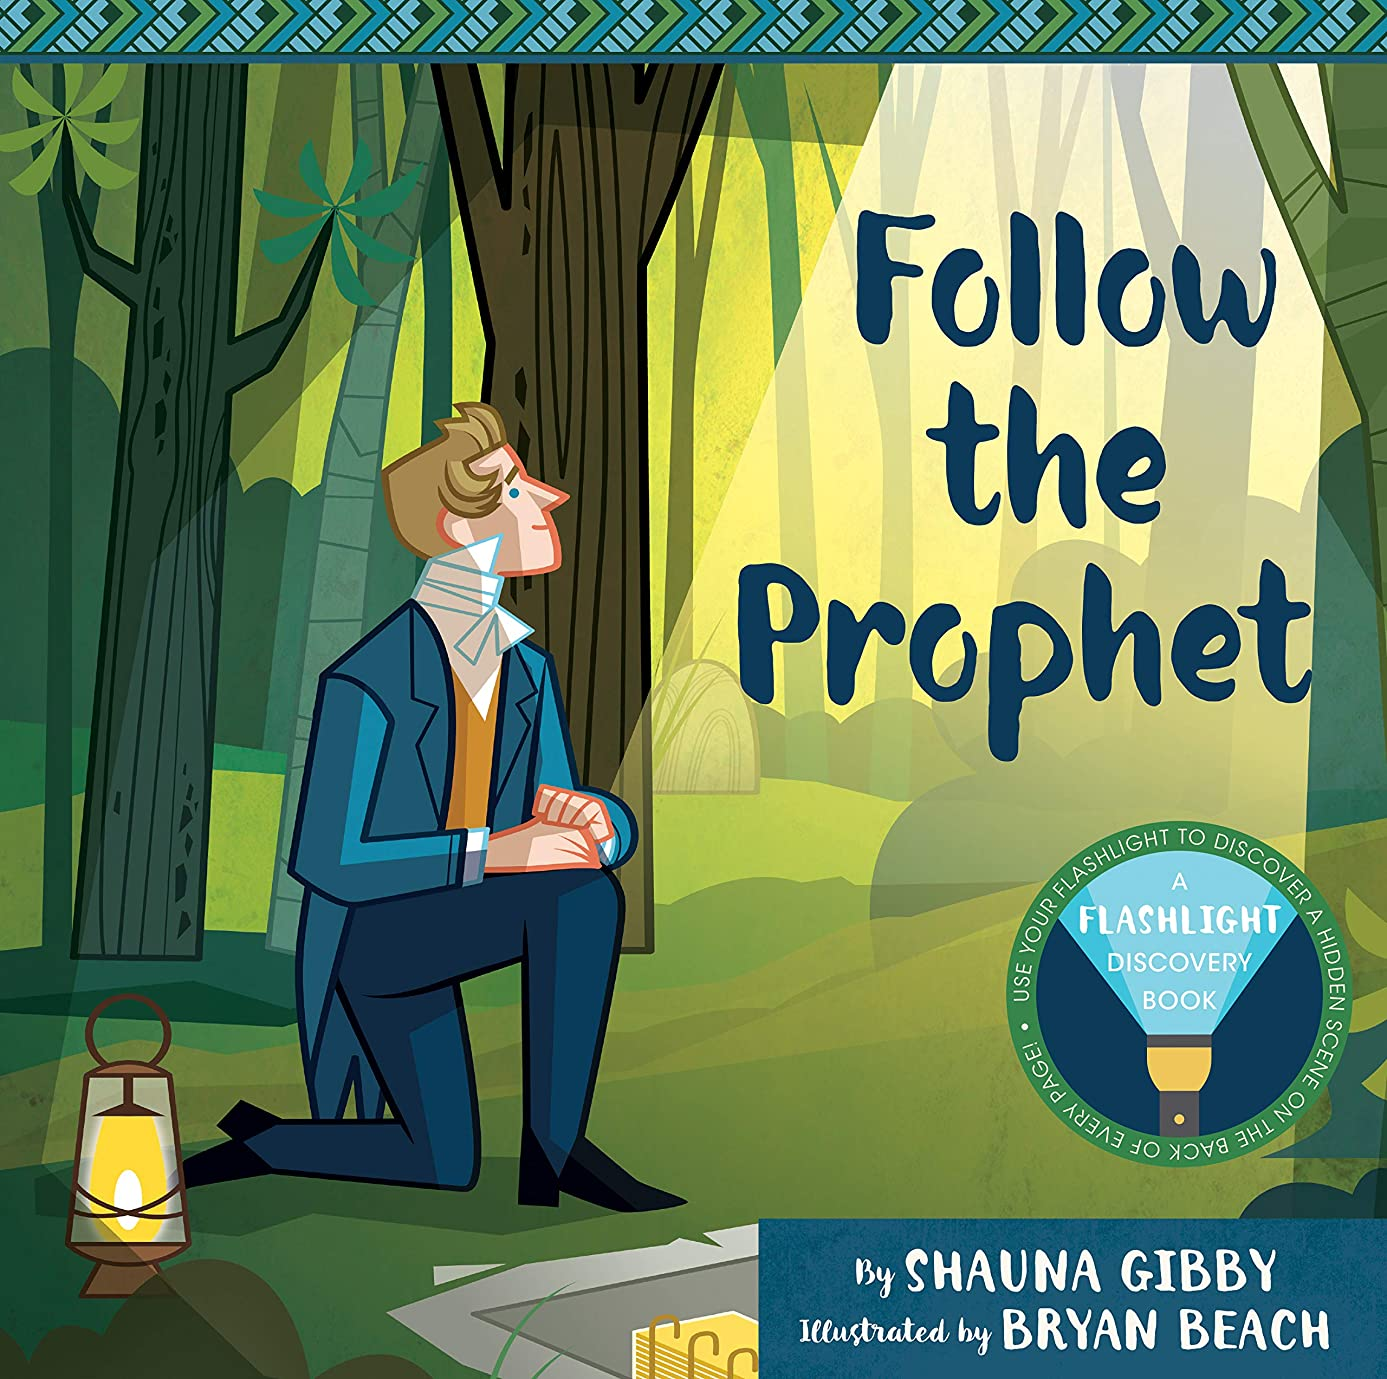 Follow the Prophet: A Flashlight Discovery Book